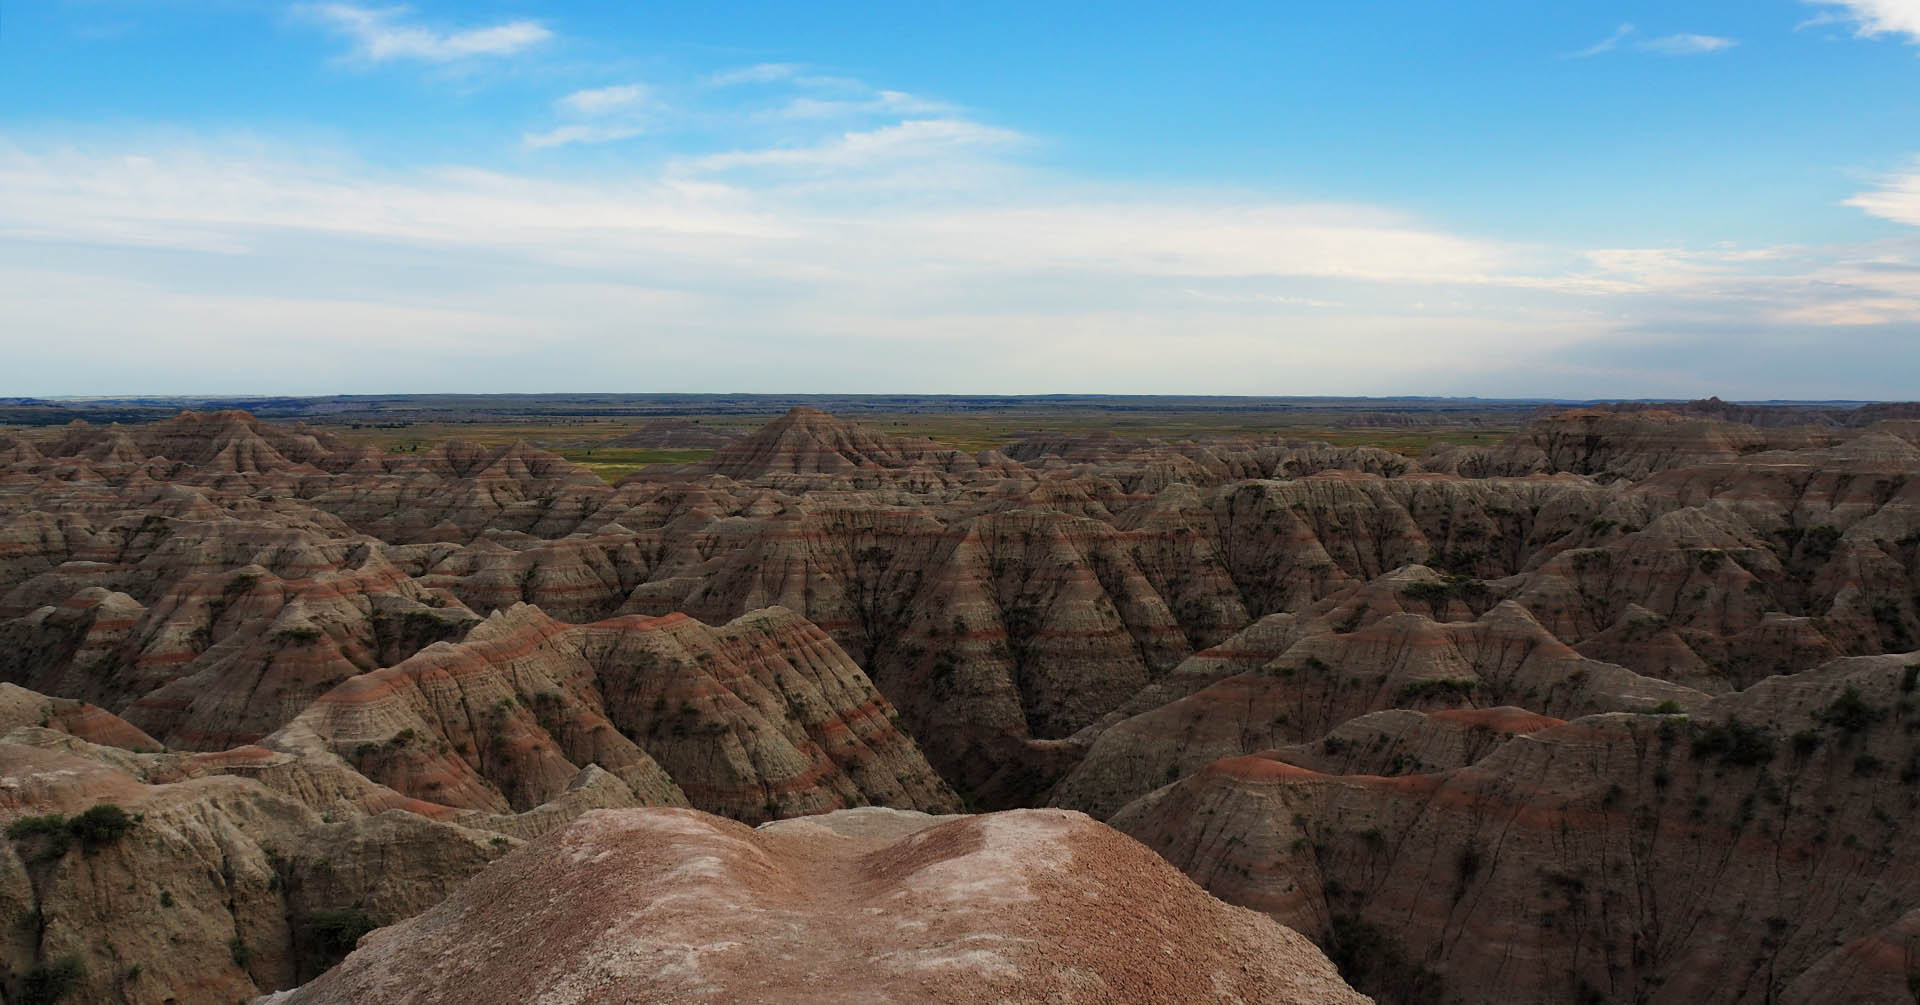 Badlands National Park - Fossils, layered rocks, bison & prairie dogs